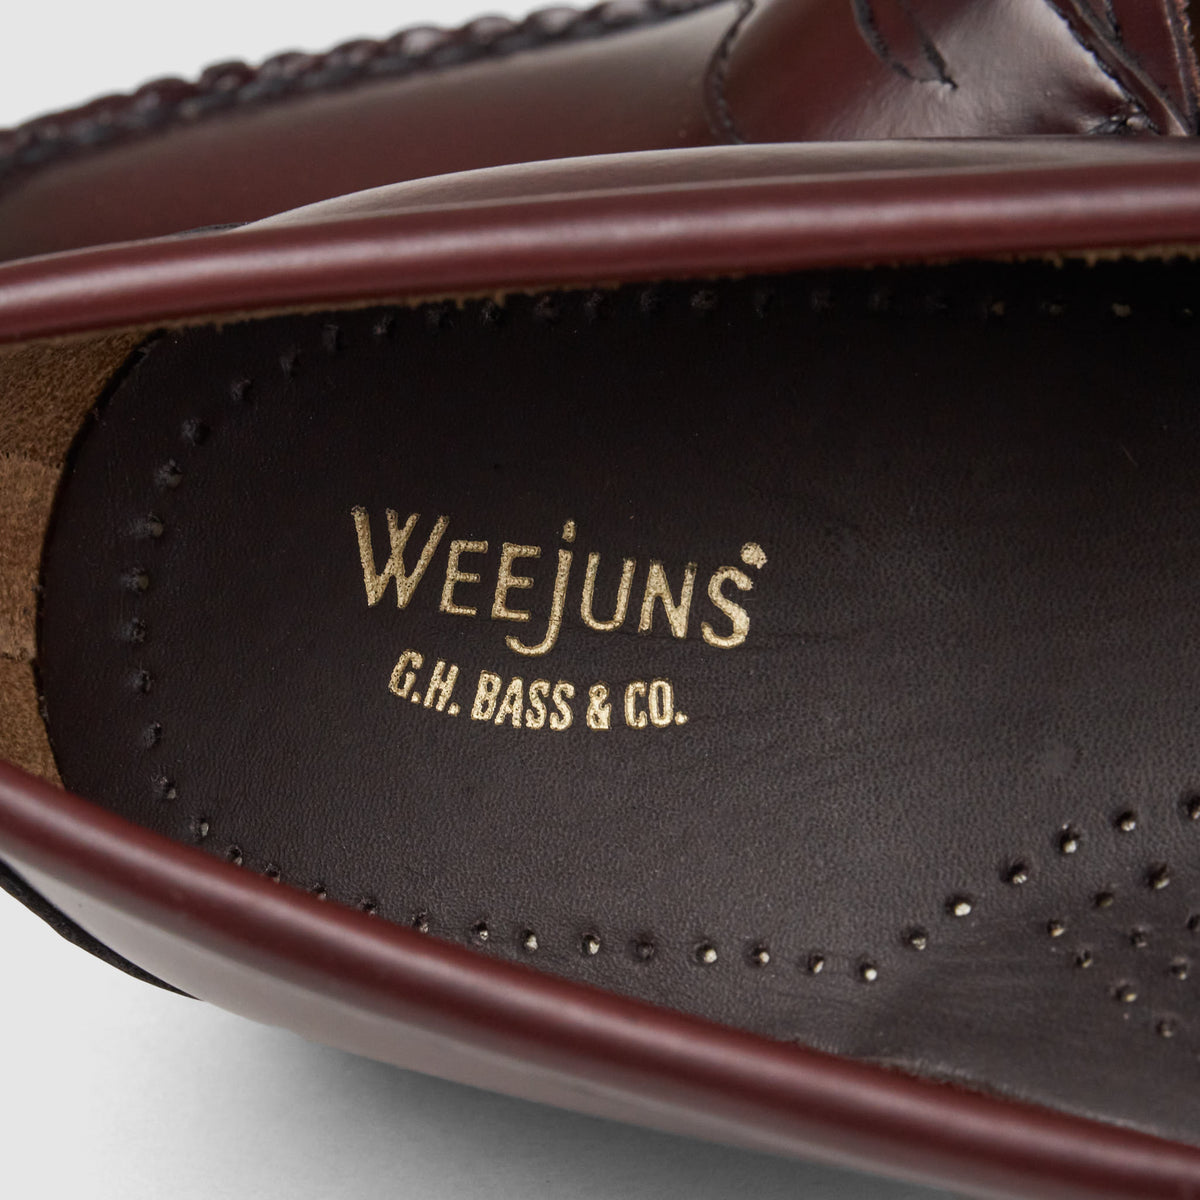 G.H. Bass & Co. Weejuns Ladies Penny Loafers